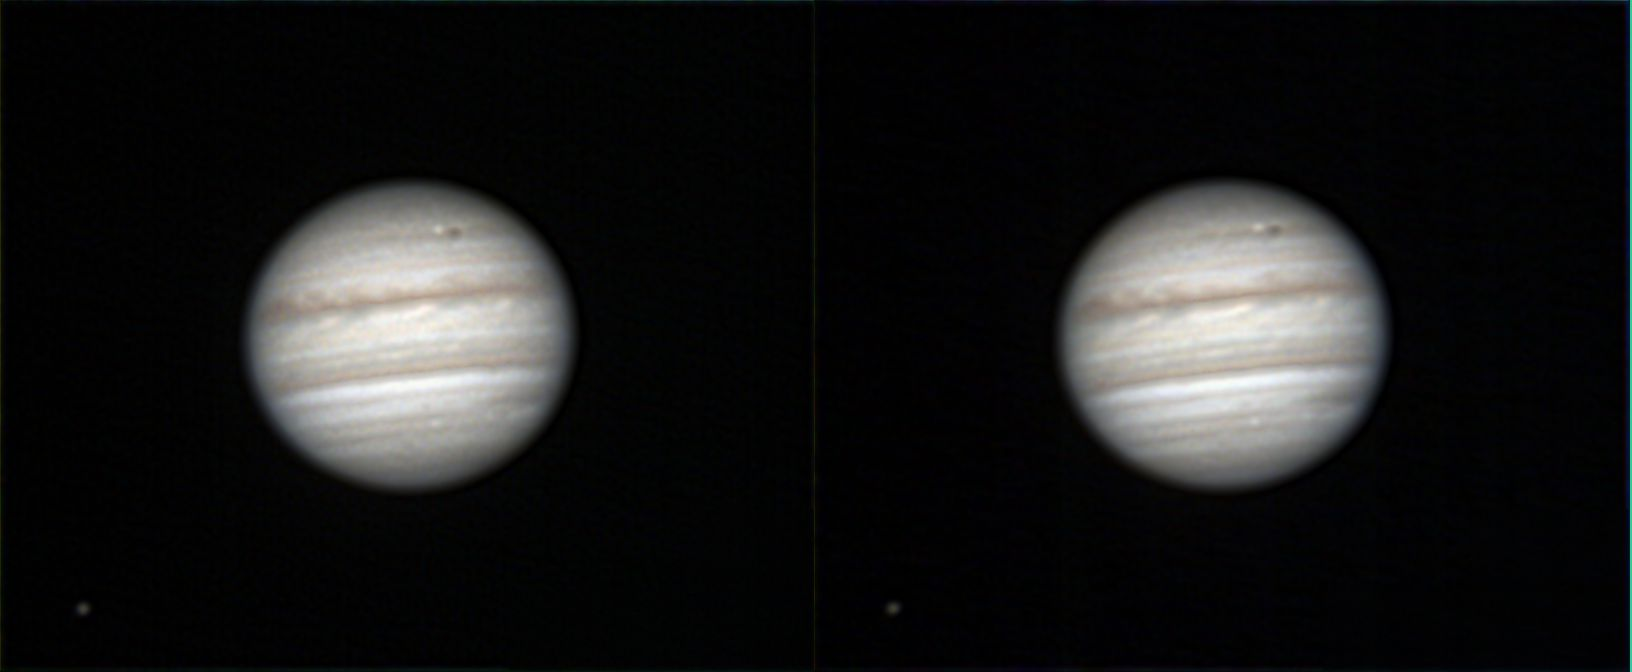 A Stereo image of Jupiter and its moons.